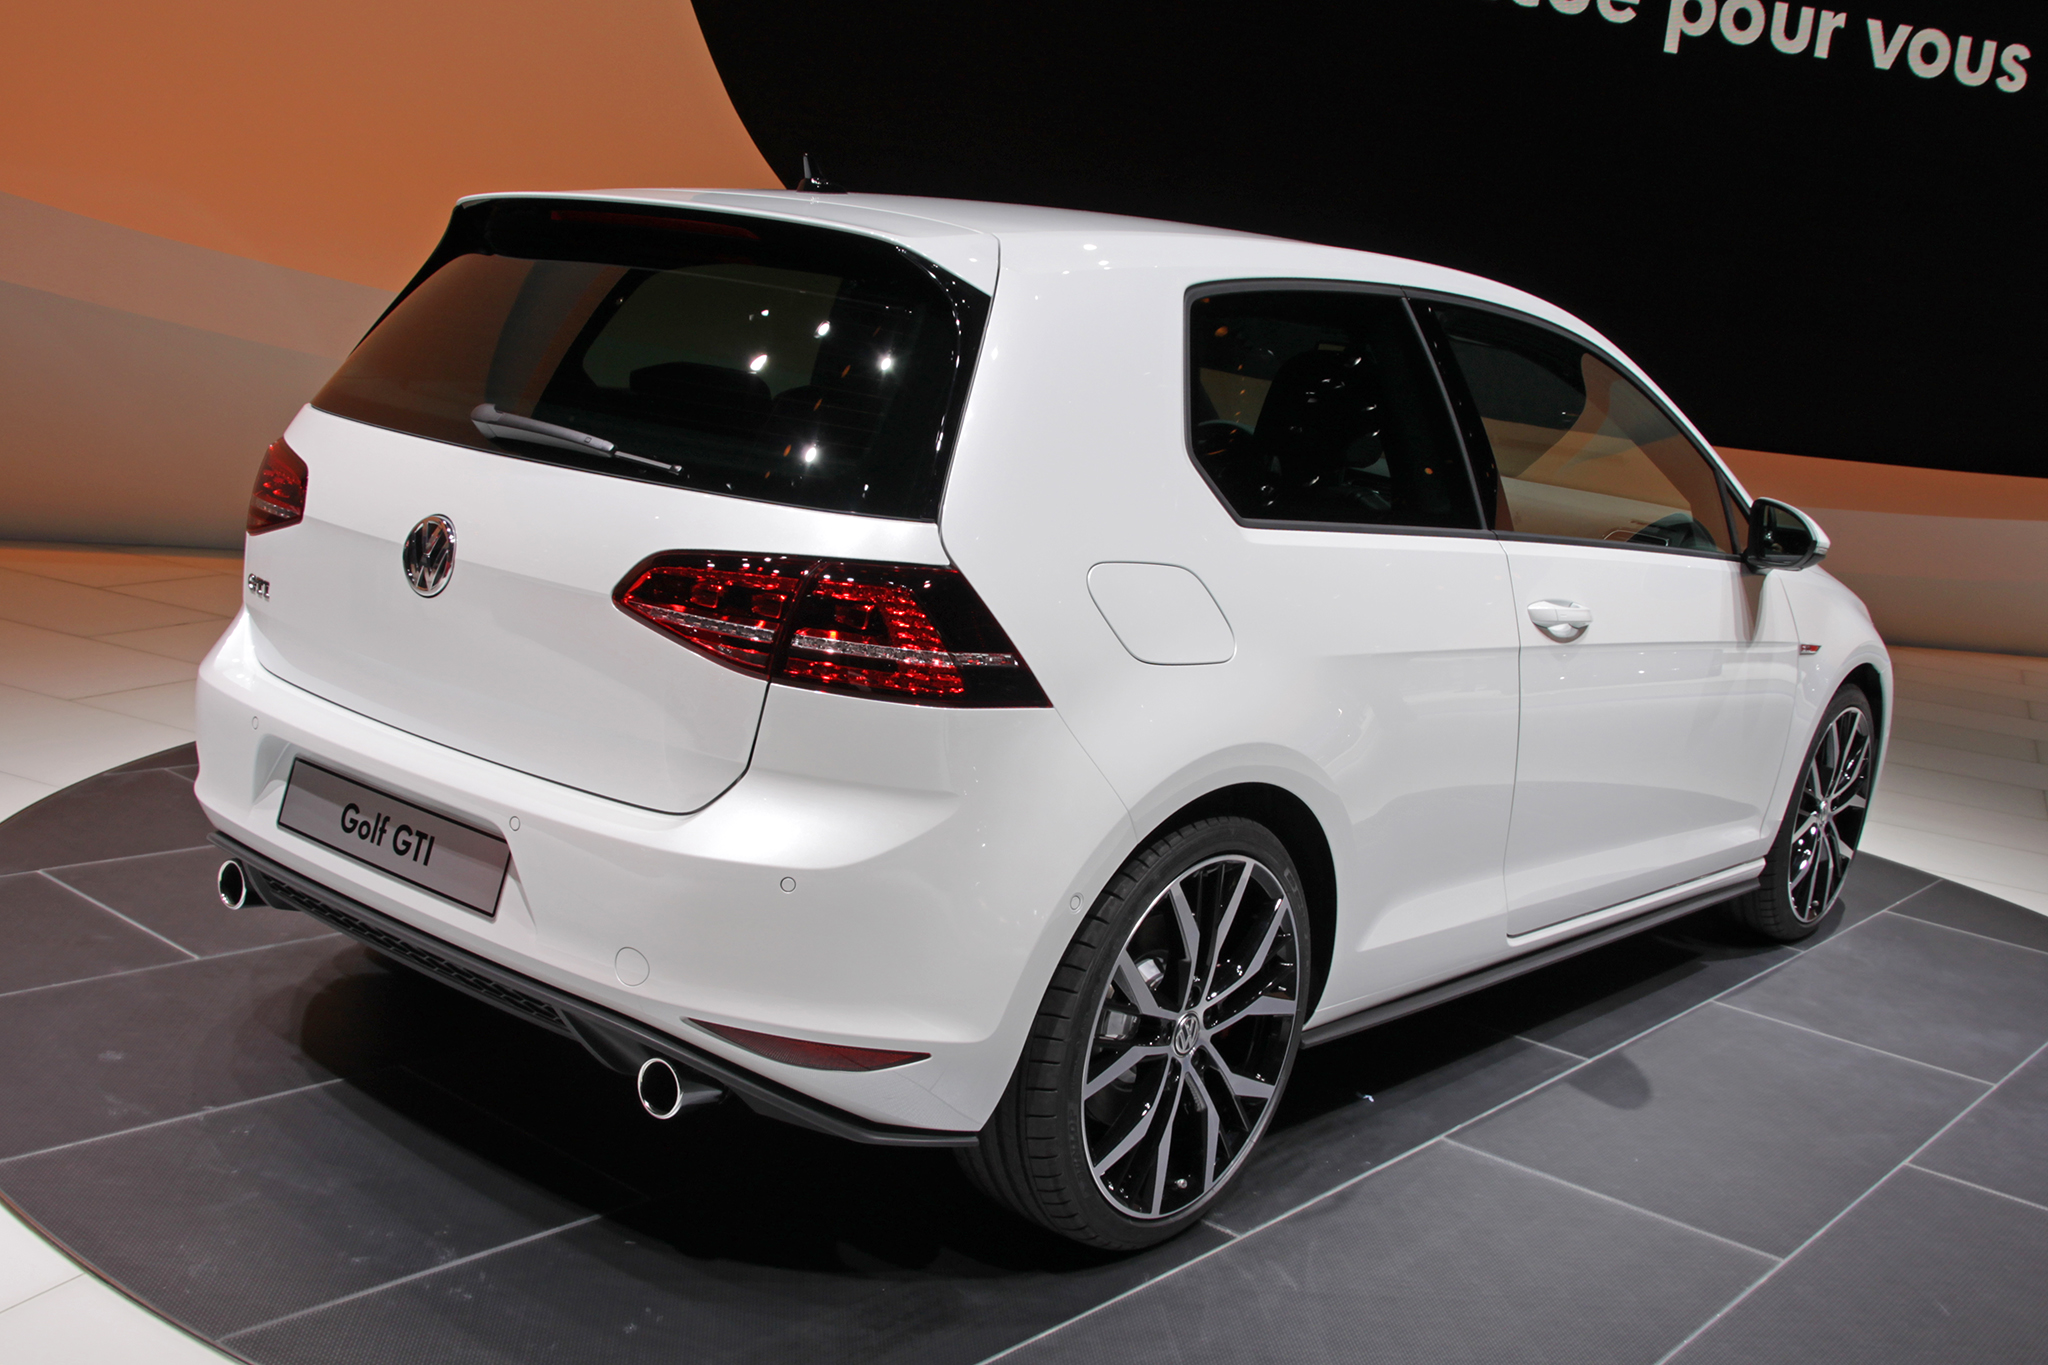 vw golf 7 gti 2 plan te. Black Bedroom Furniture Sets. Home Design Ideas